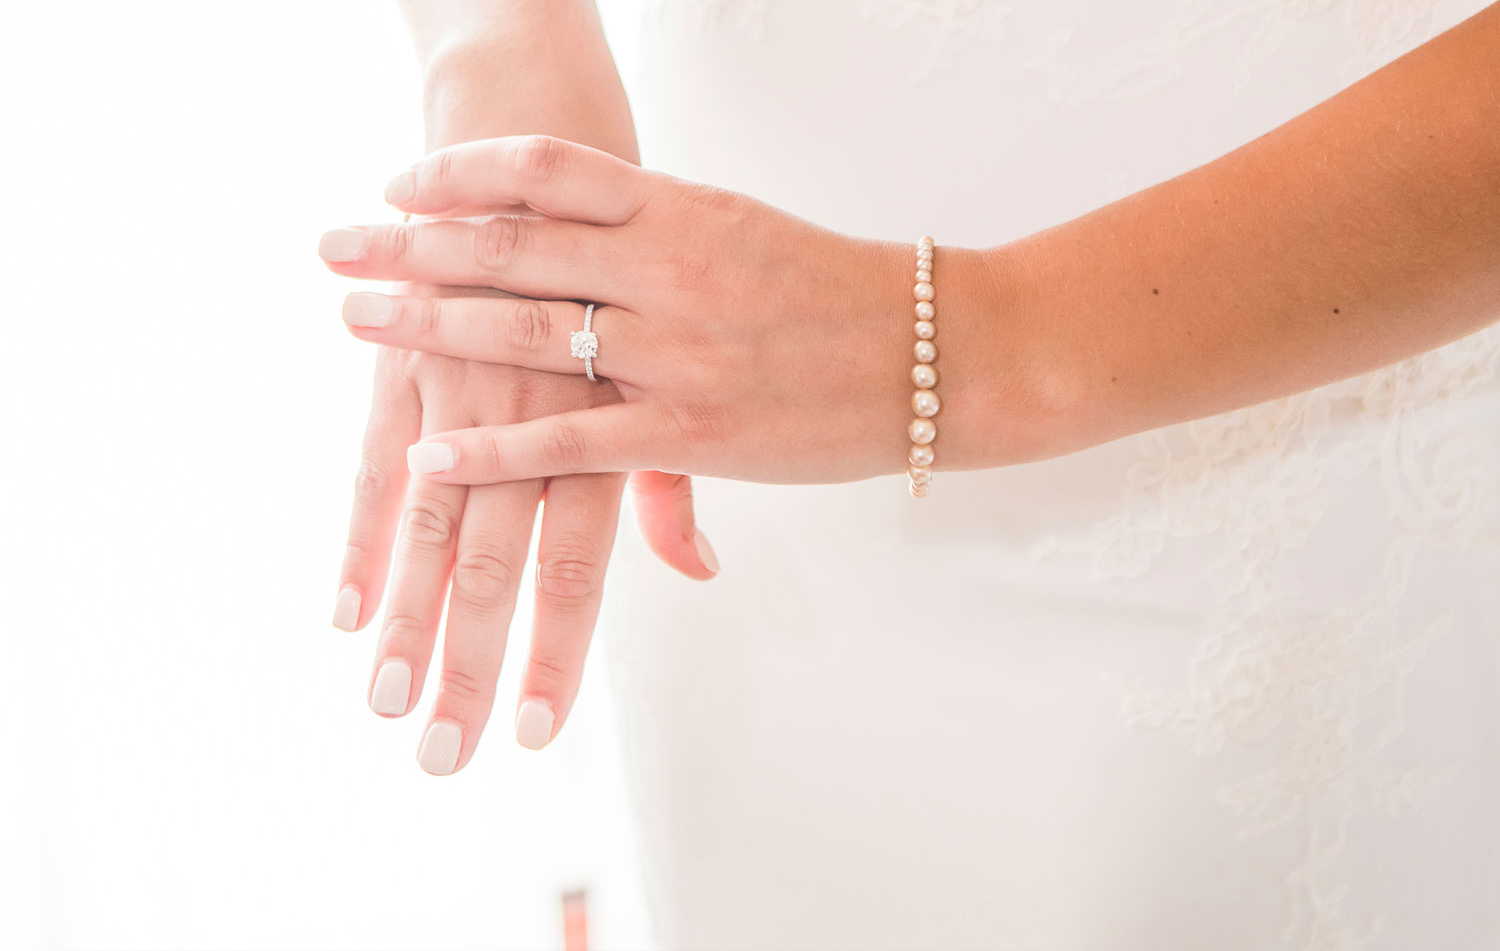 woman's hands with ivory manicure, one hand on top with pearl bracelet and round diamond engagement ring with pavé band